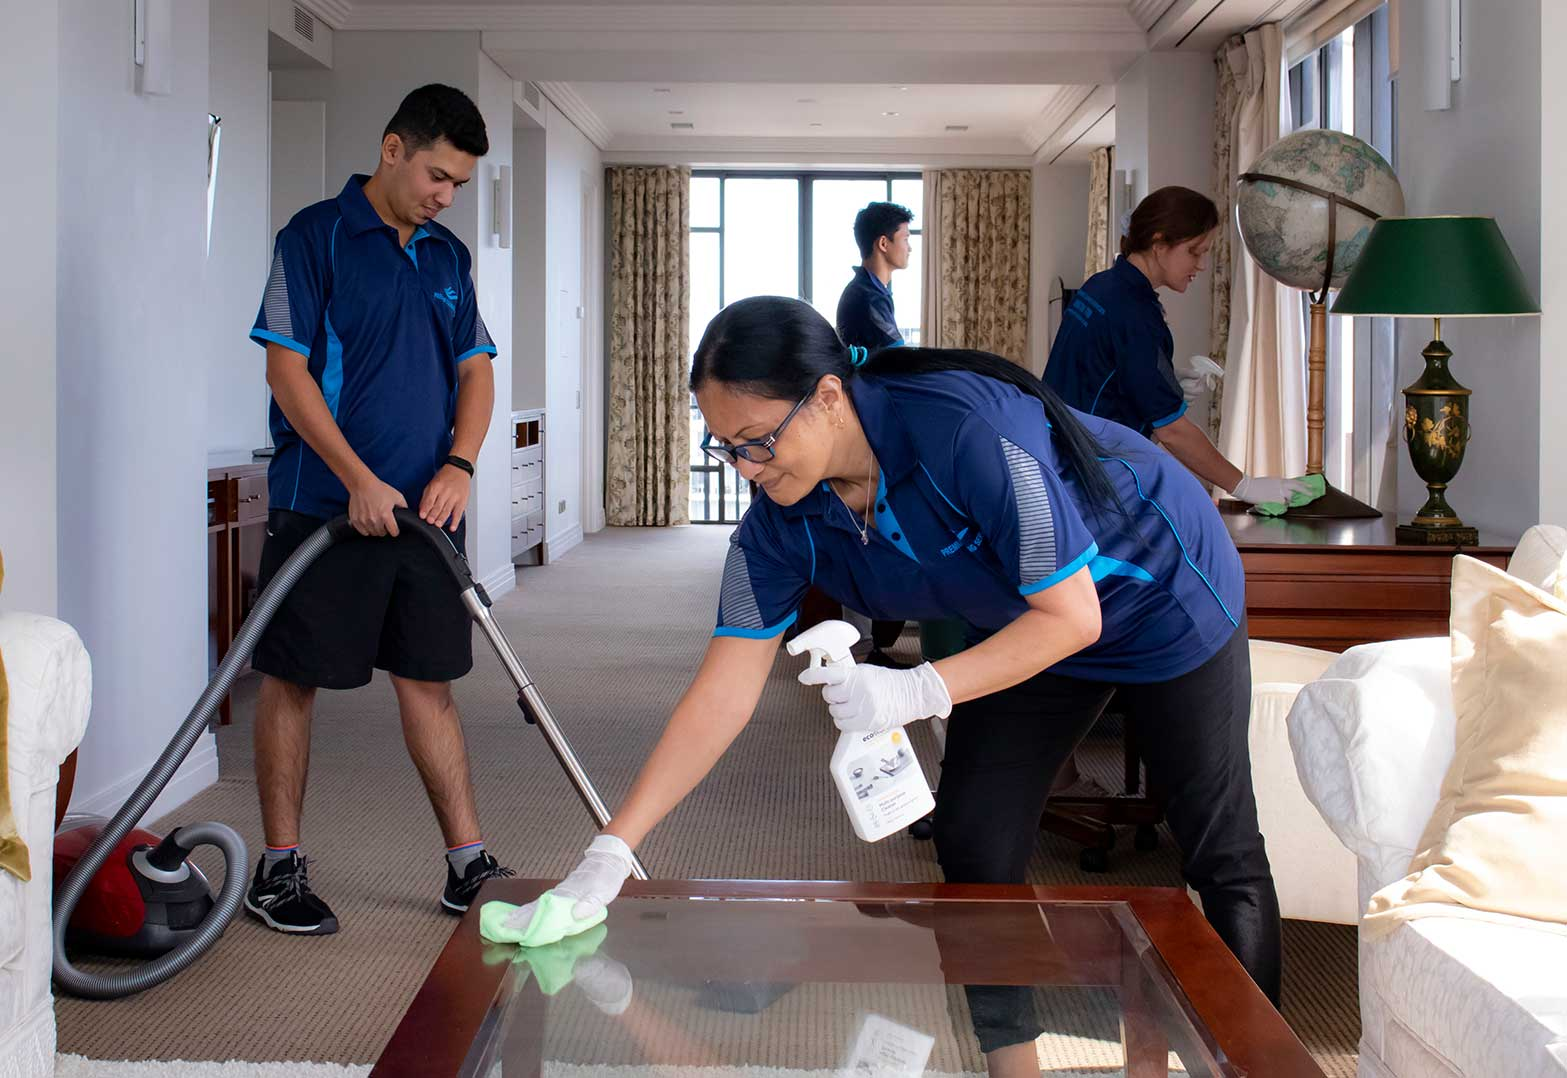 Group Cleaning